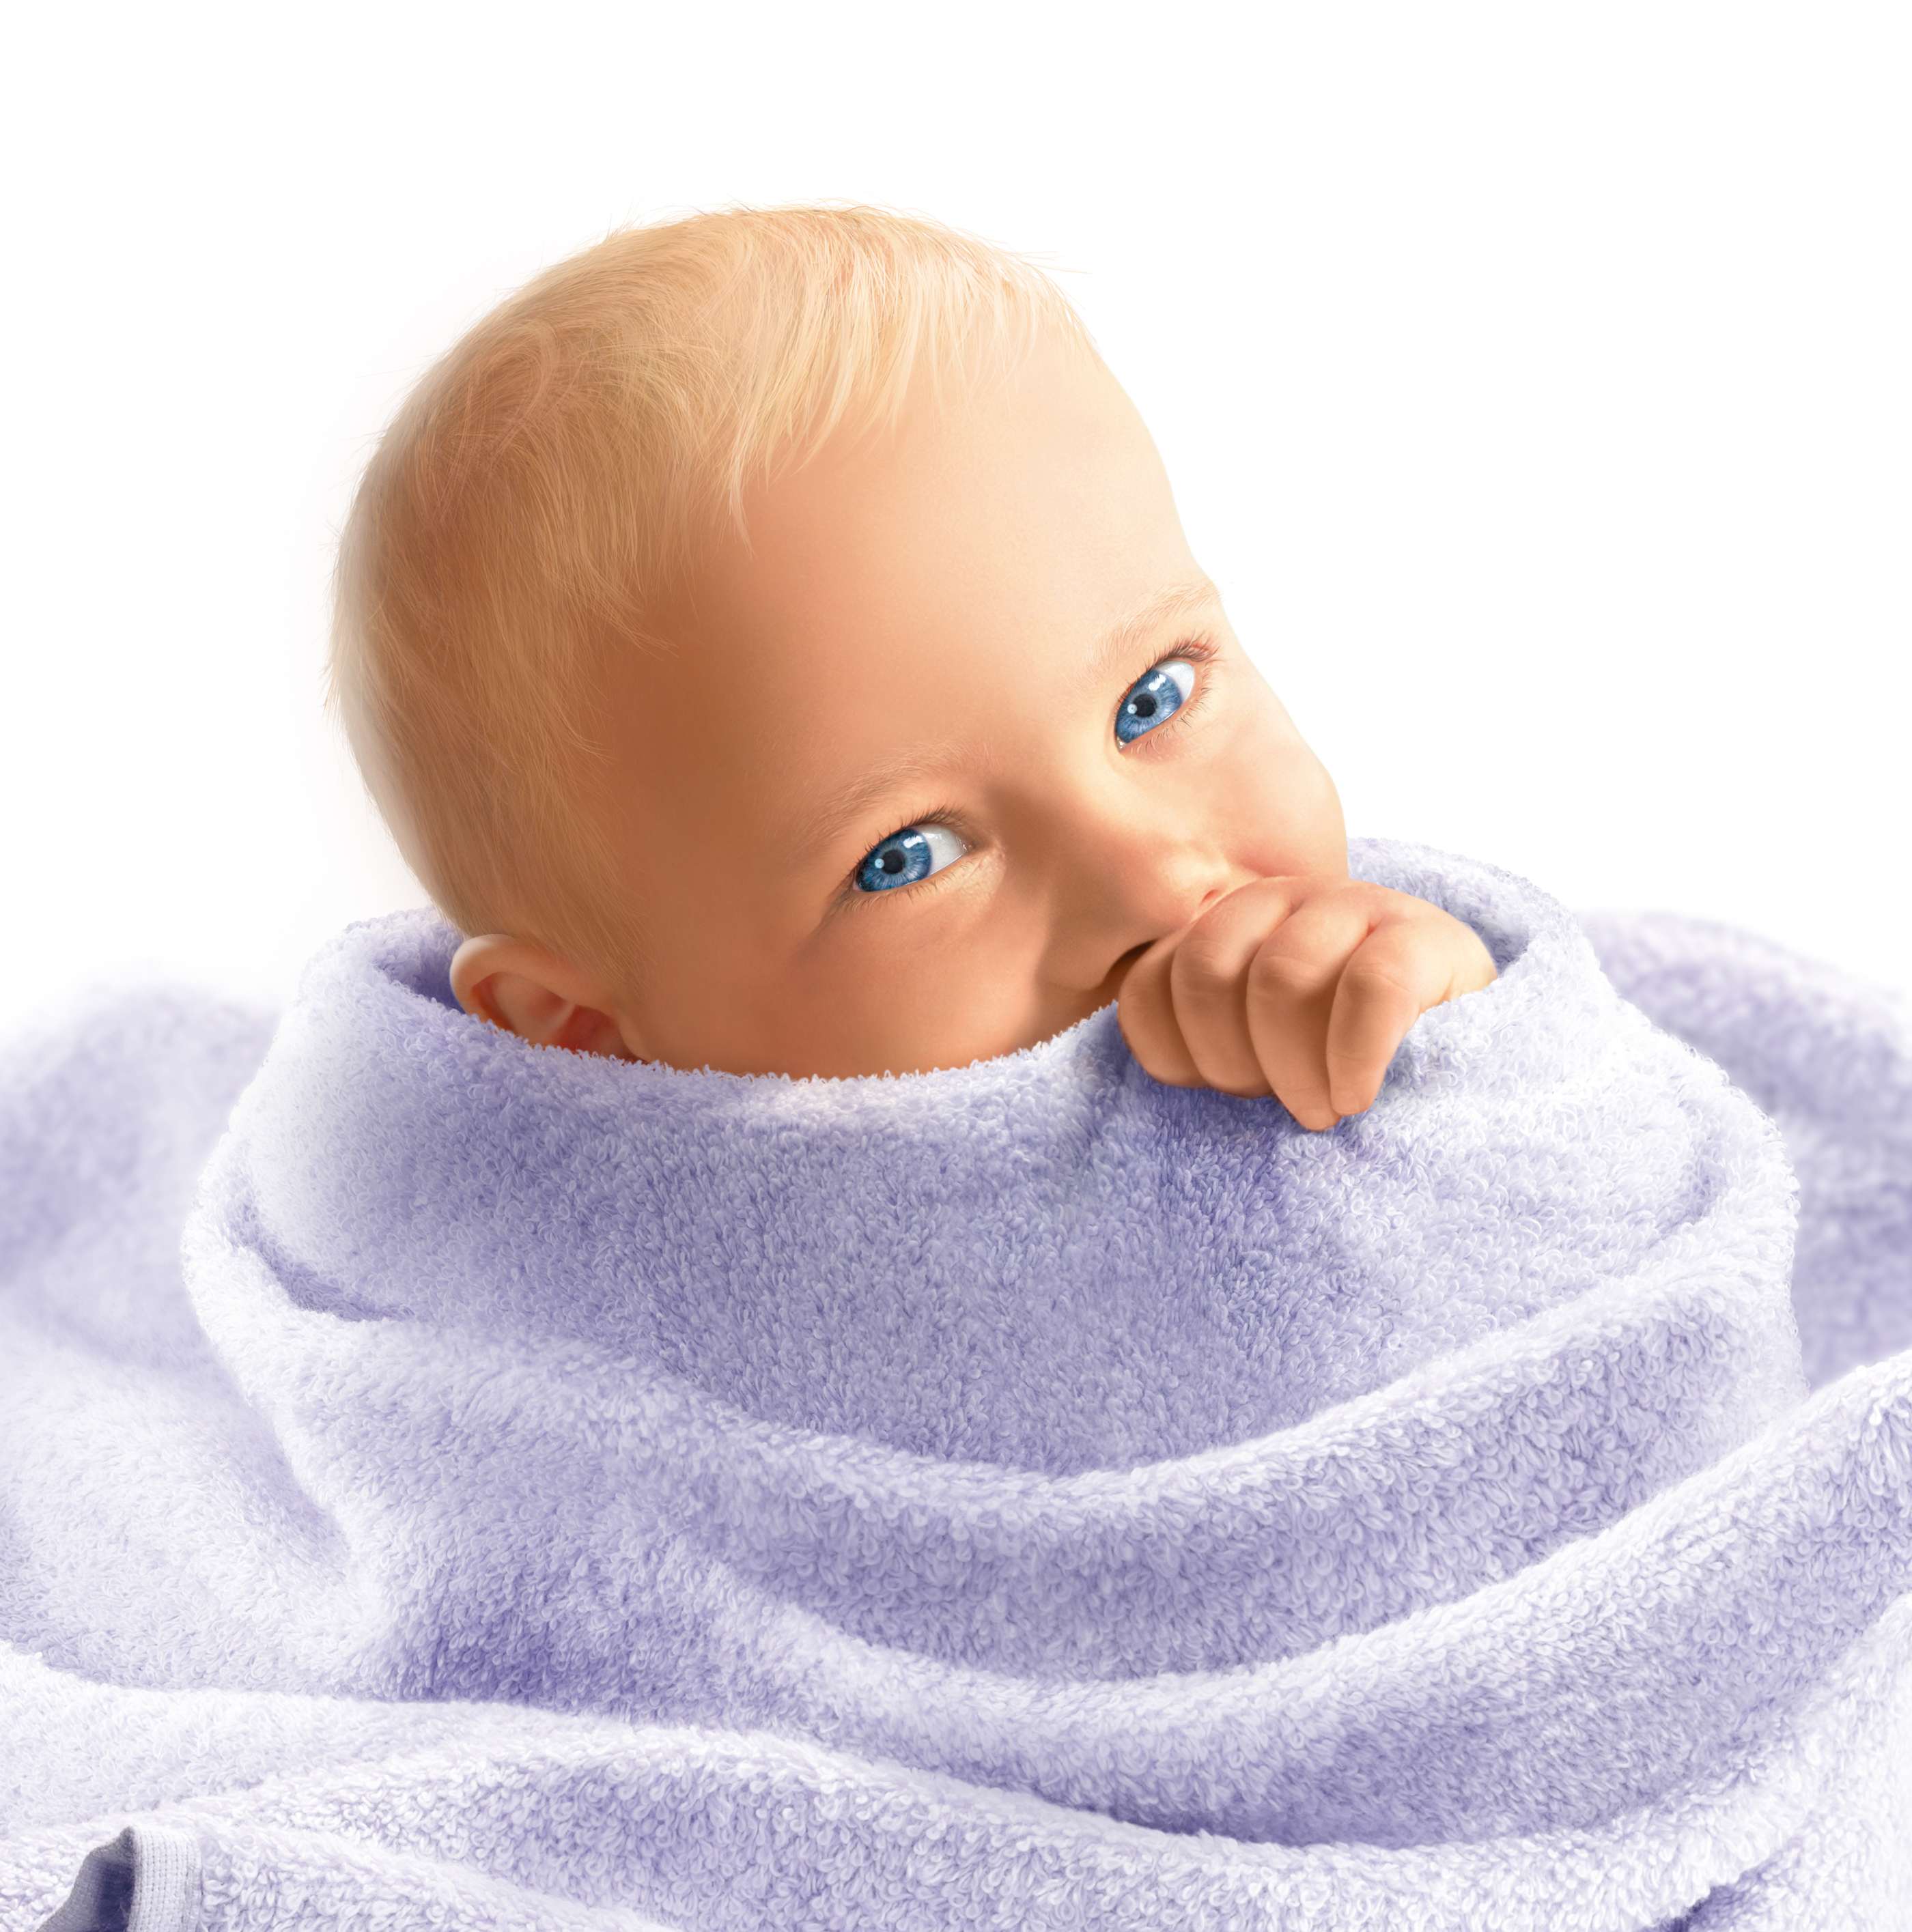 Baby in Towels